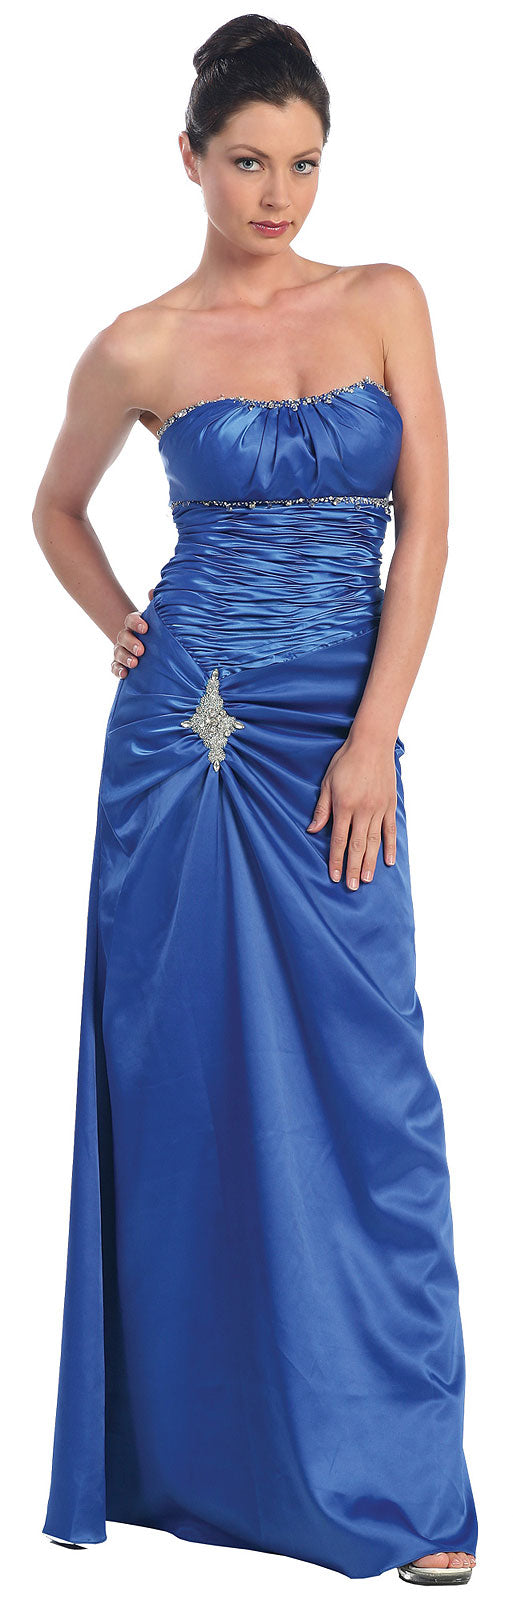 Image of Ruched Bejeweled Fitted Formal Evening Dress in Royal Blue